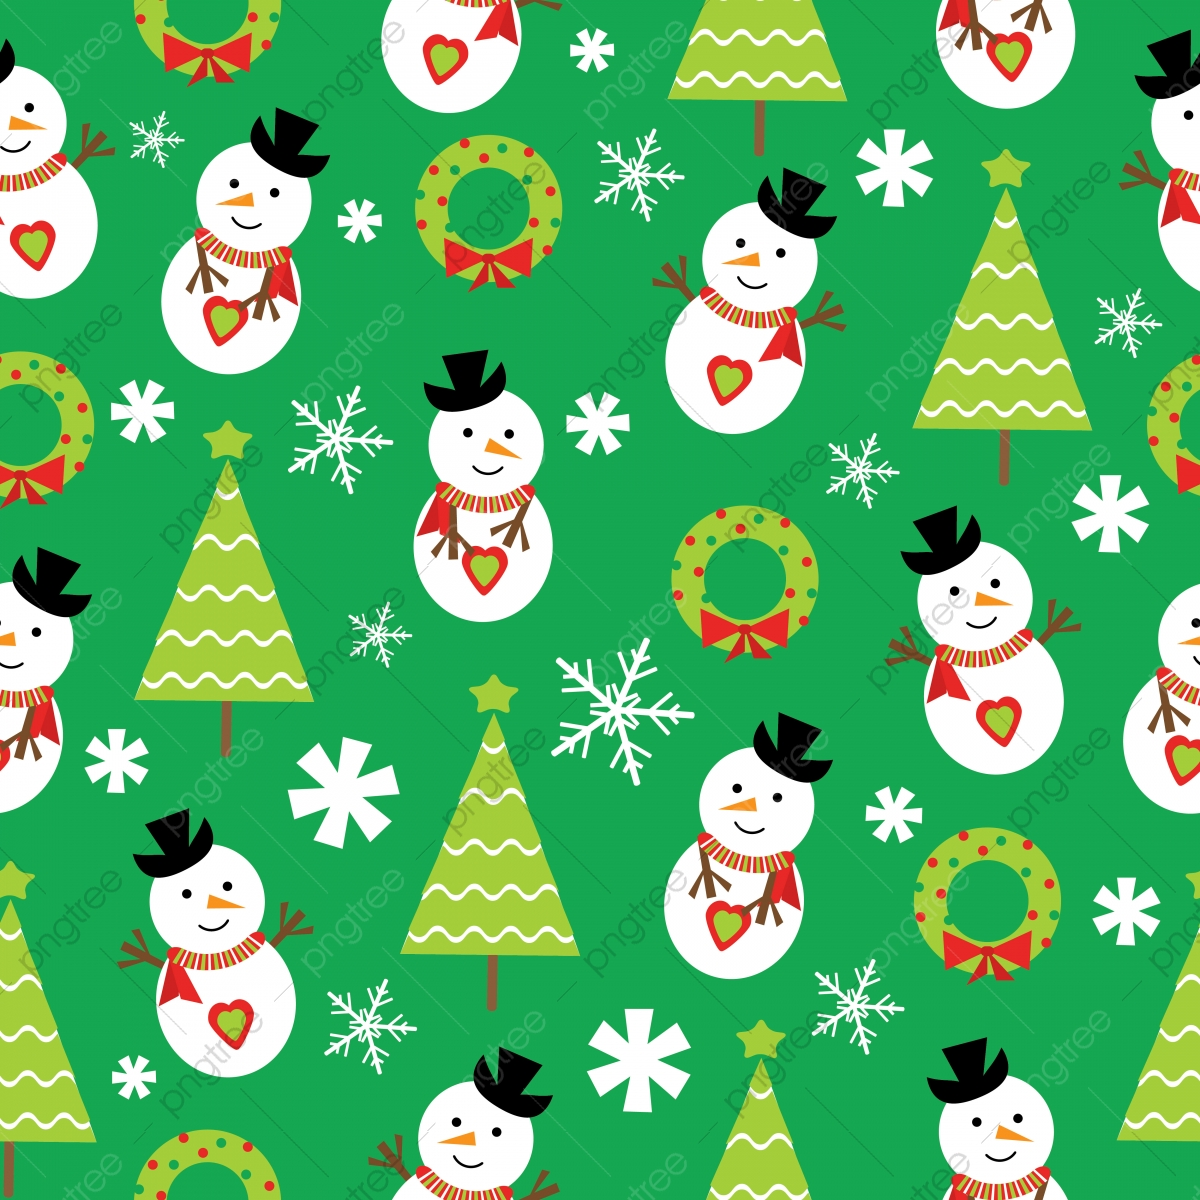 Seamless Background Of Cute Snowman And Xmas Tree On Green